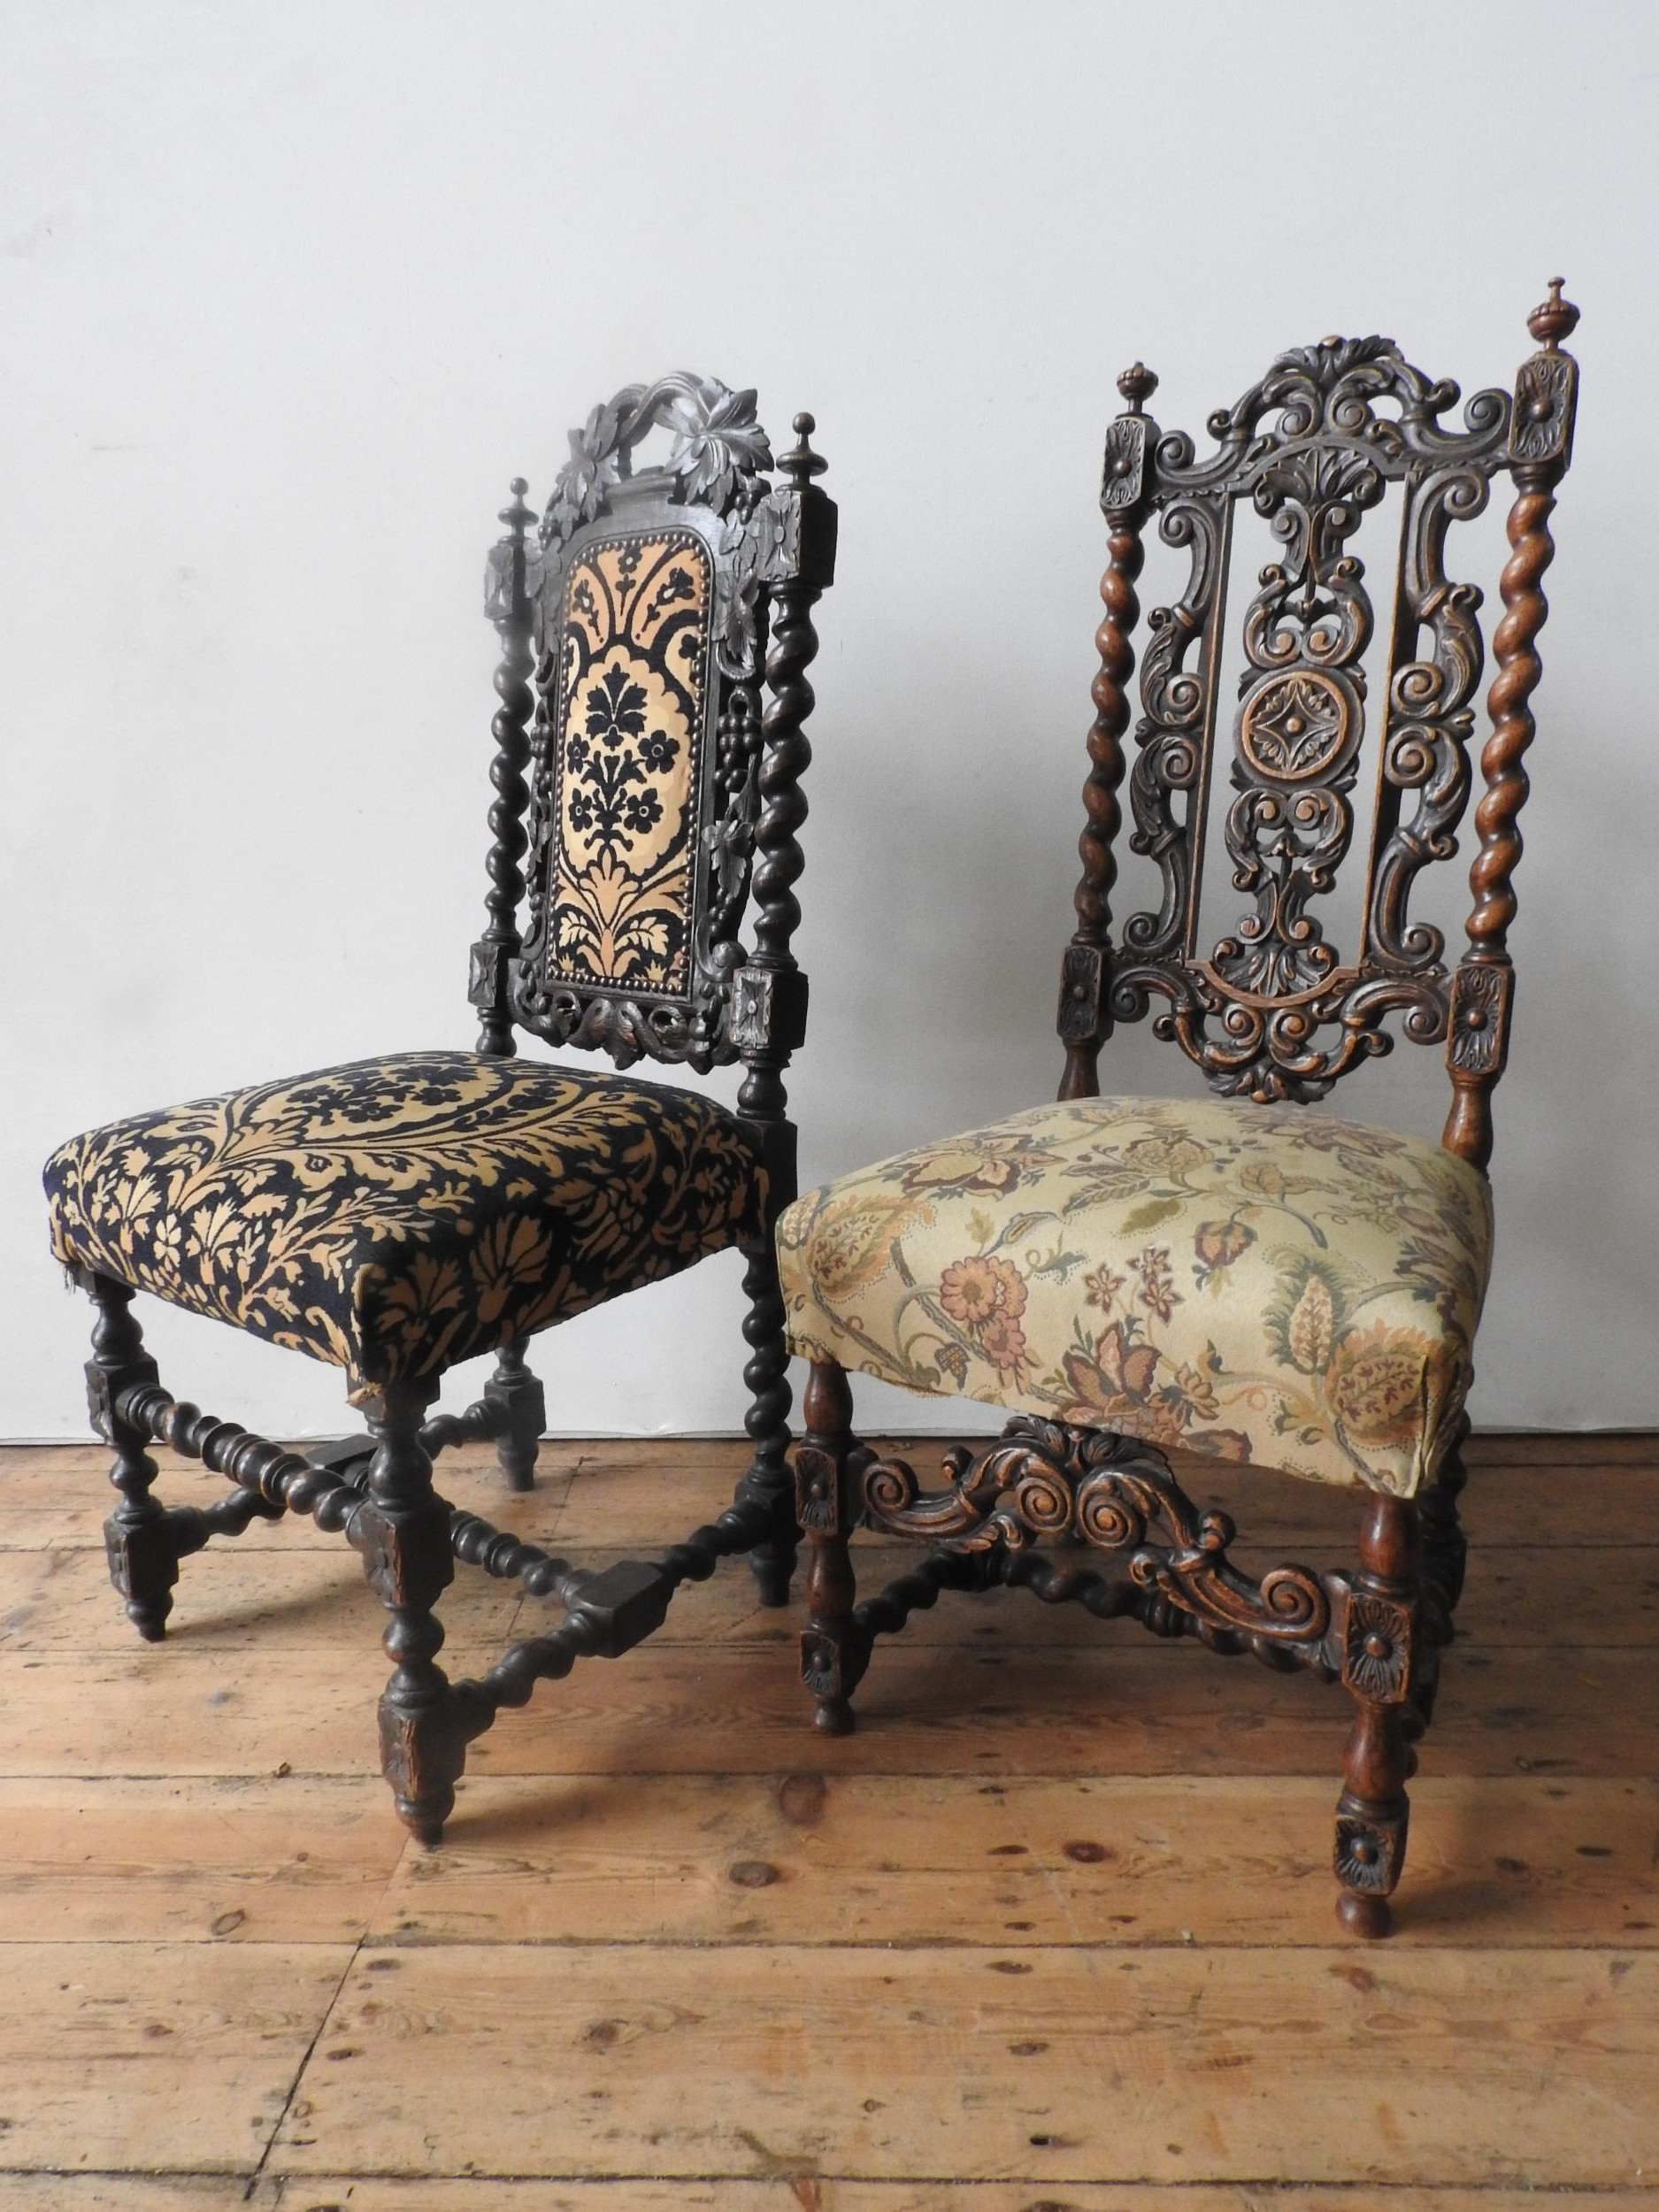 TWO ORNATE CARVED OAK 19TH CENTURY HALL CHAIRS, both with barley twist and foliate carved frames - Image 2 of 2